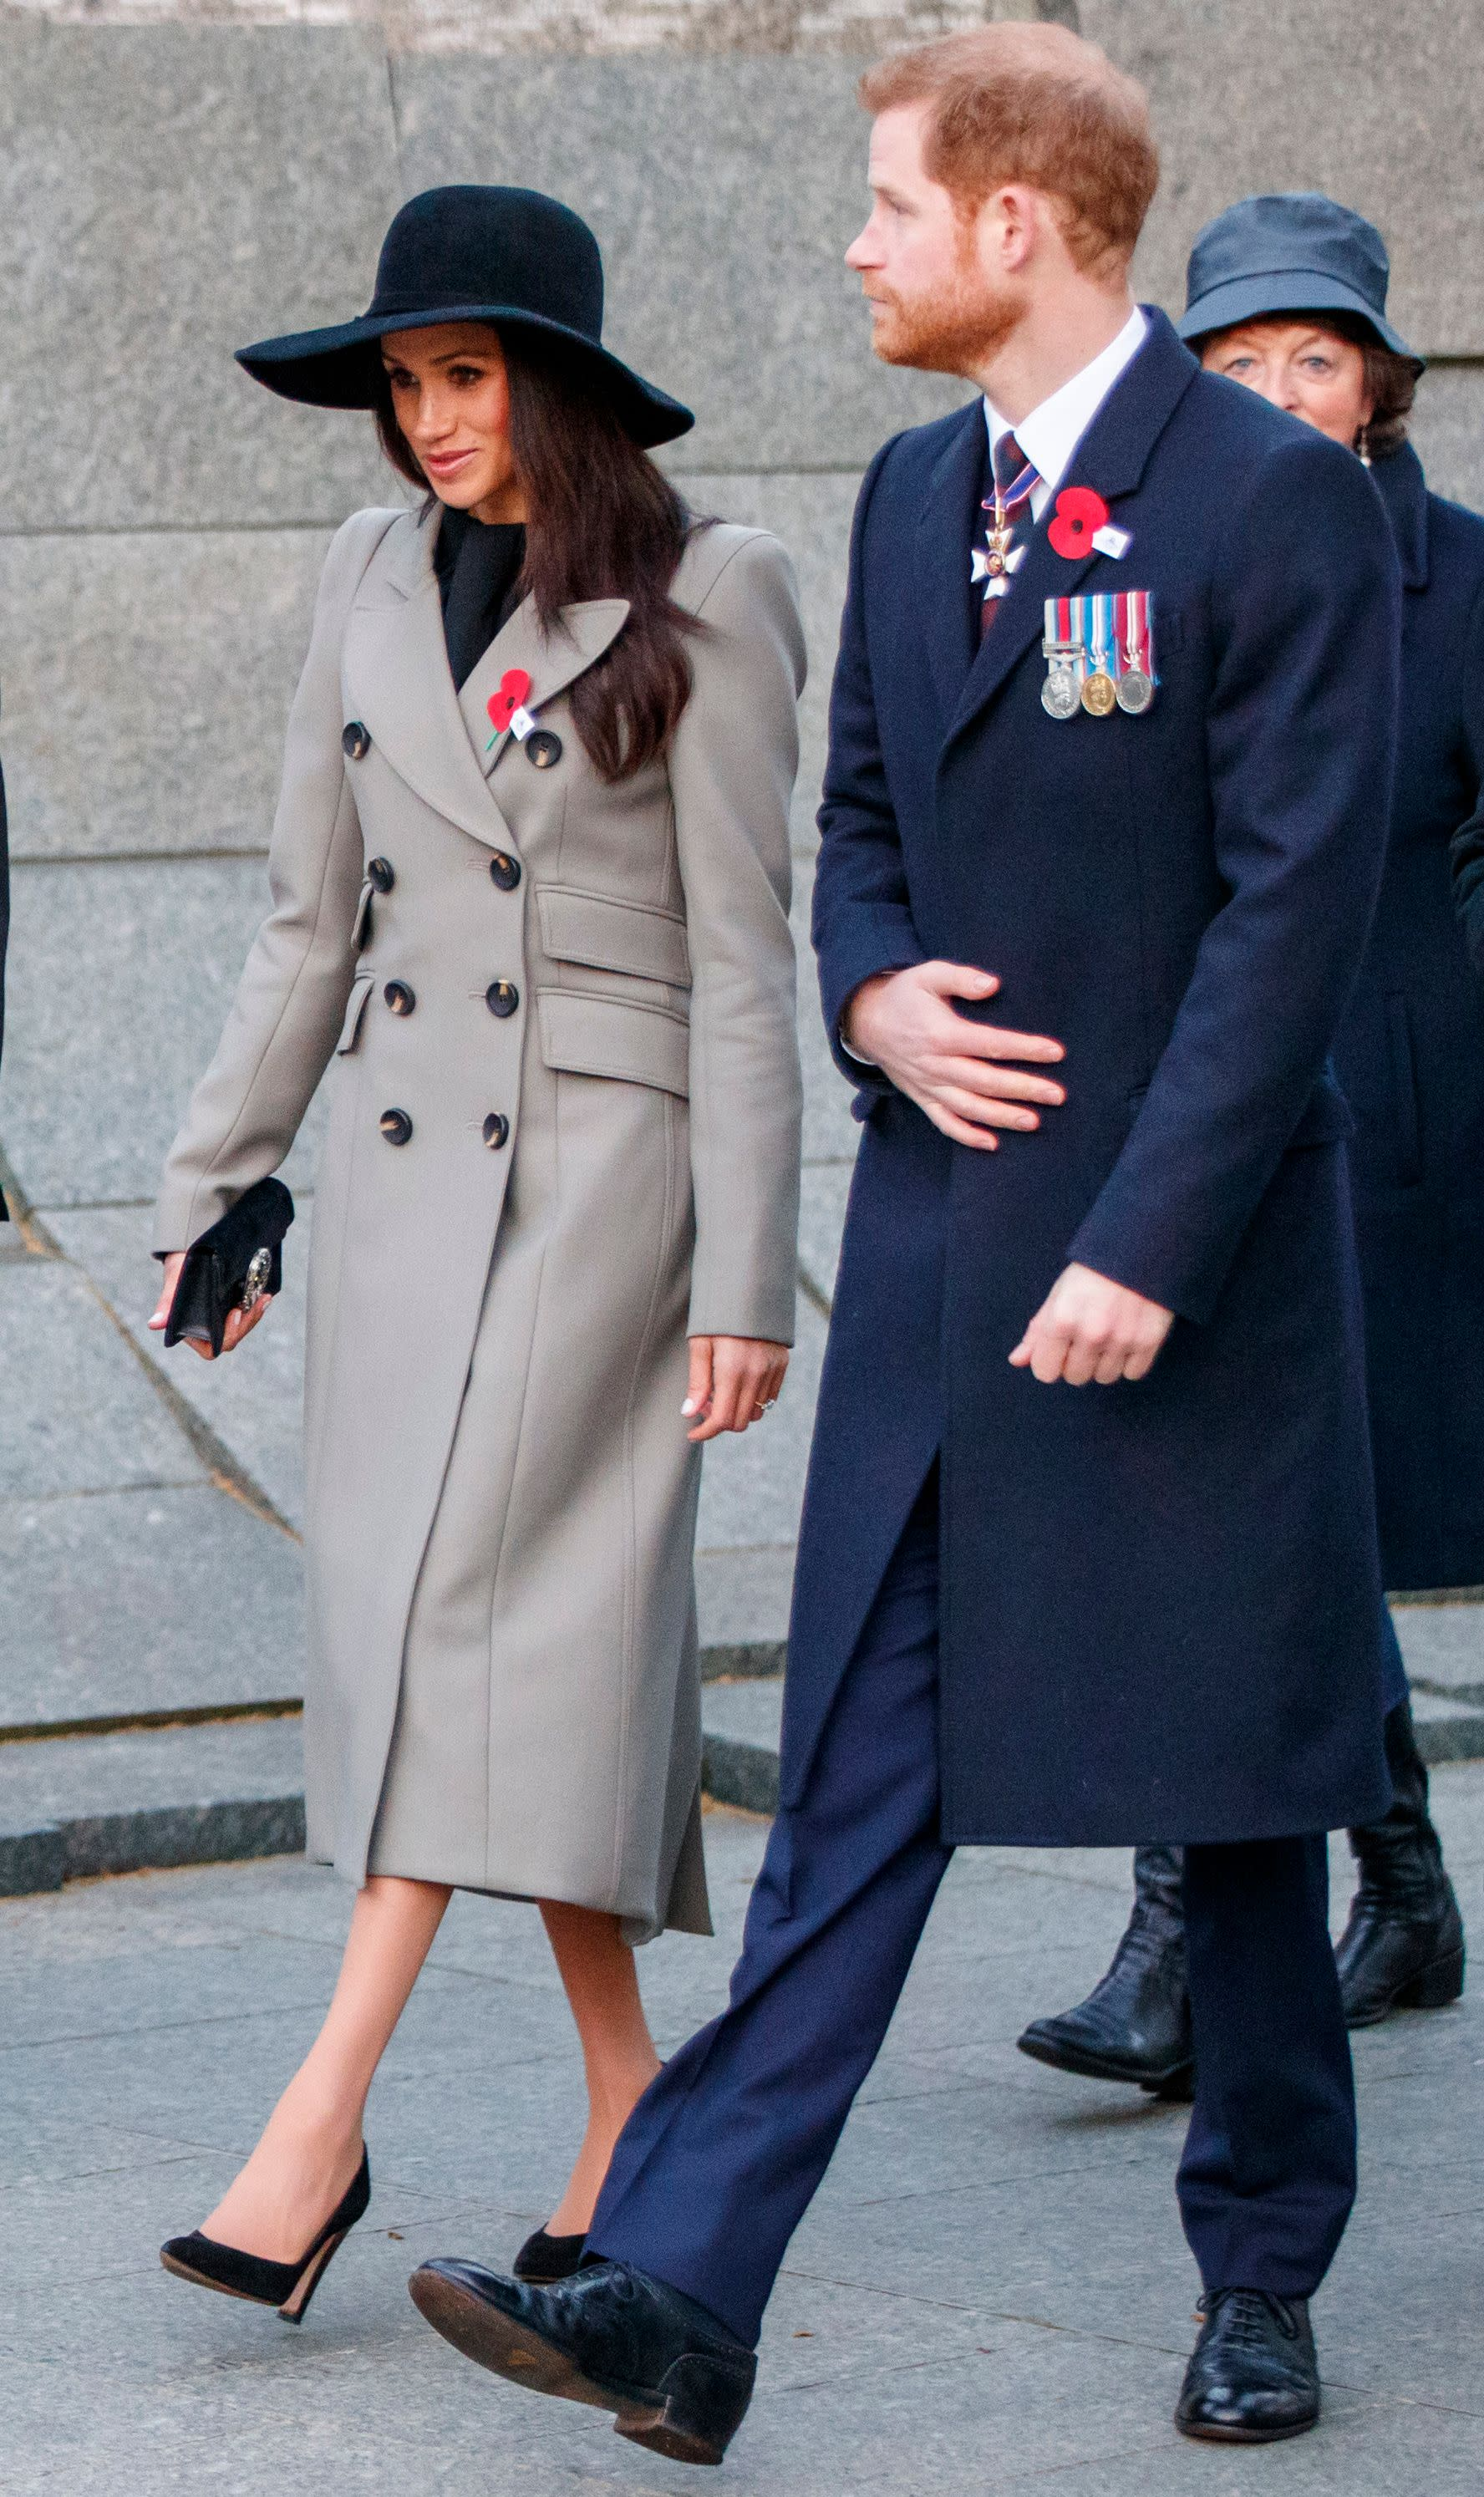 Meghan Markle's Military Style at the Anzac Day Service